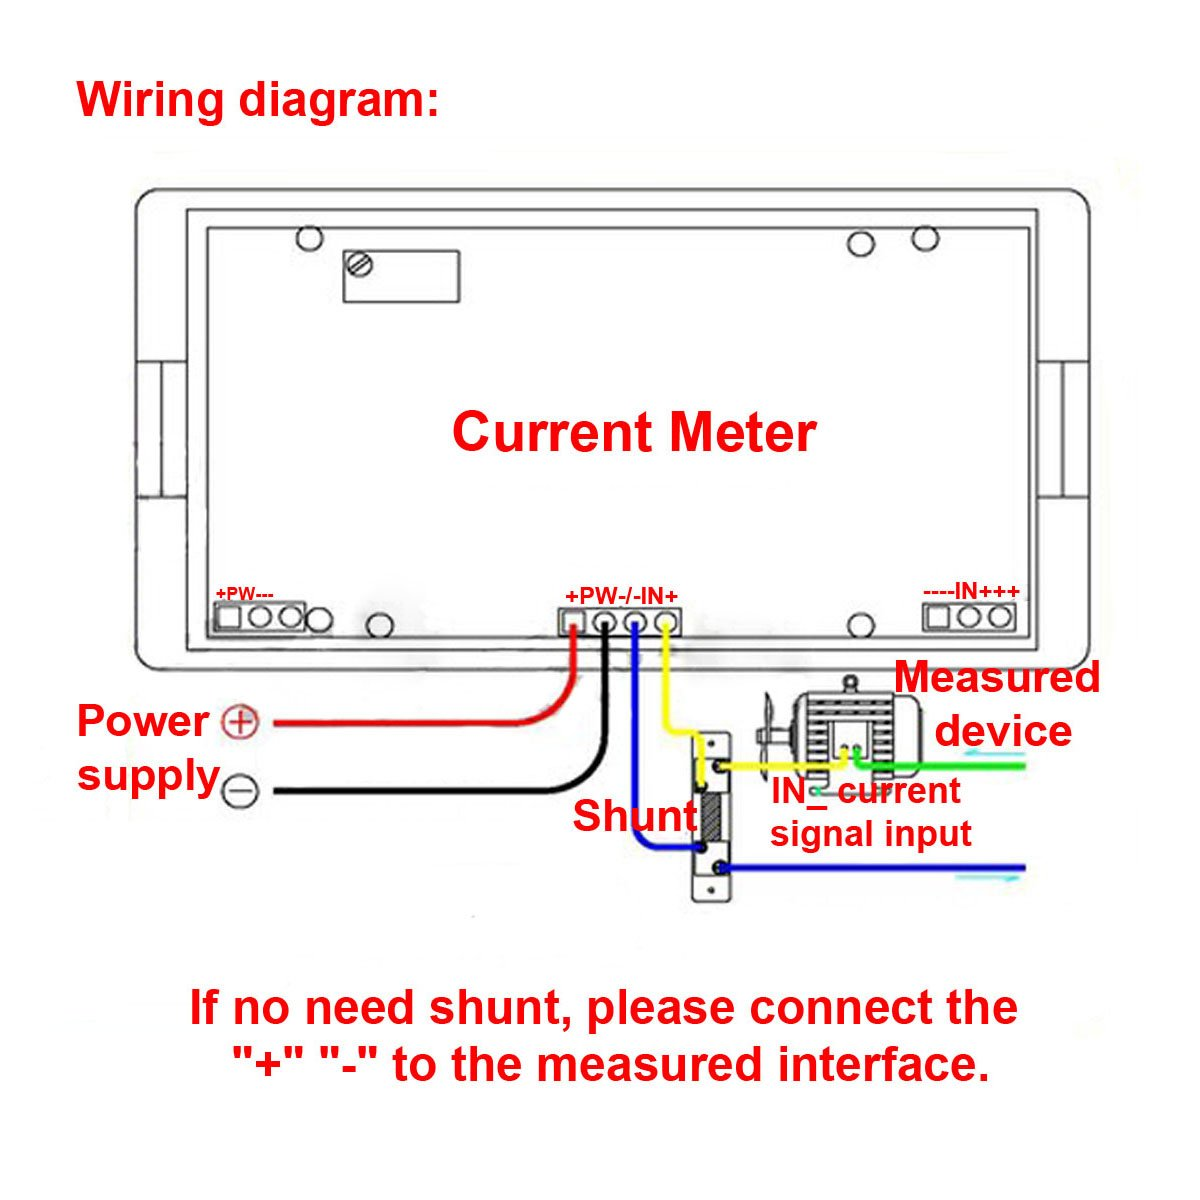 71y4ihHRXiL._SL1200_ drok wiring diagram drok power supply \u2022 wiring diagrams j squared co ac amp meter wiring diagram at panicattacktreatment.co